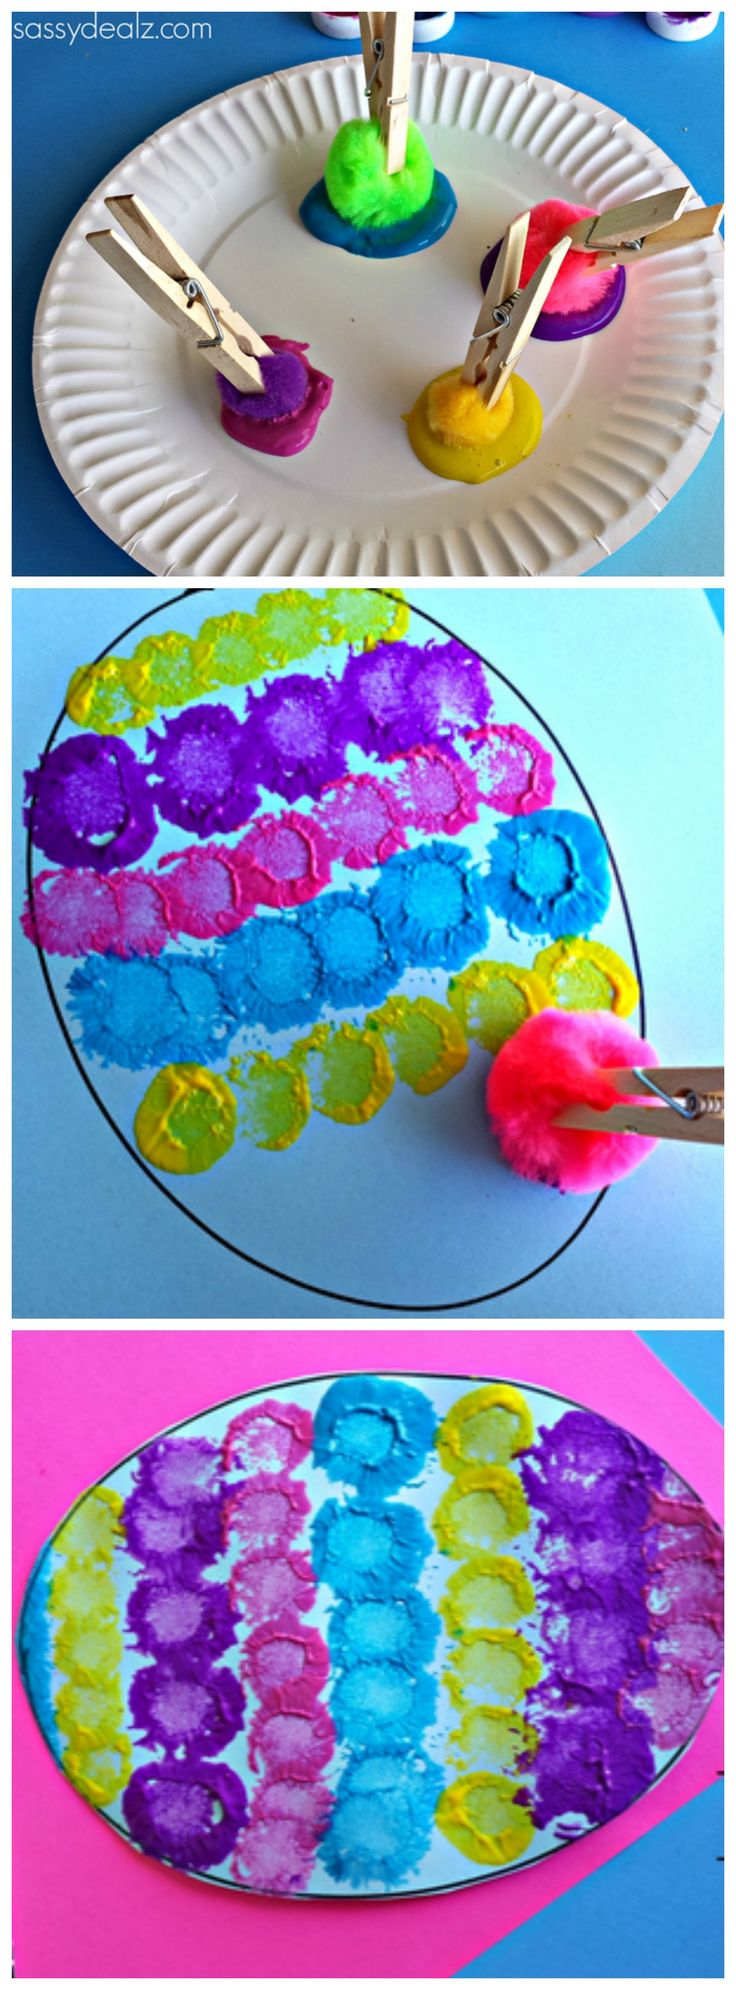 Easy Easter Activities For Kids Make Easter Craft Ideas 24 Cute And Easy Easter Crafts Kids Can Make 5 The Easter Bunny Org